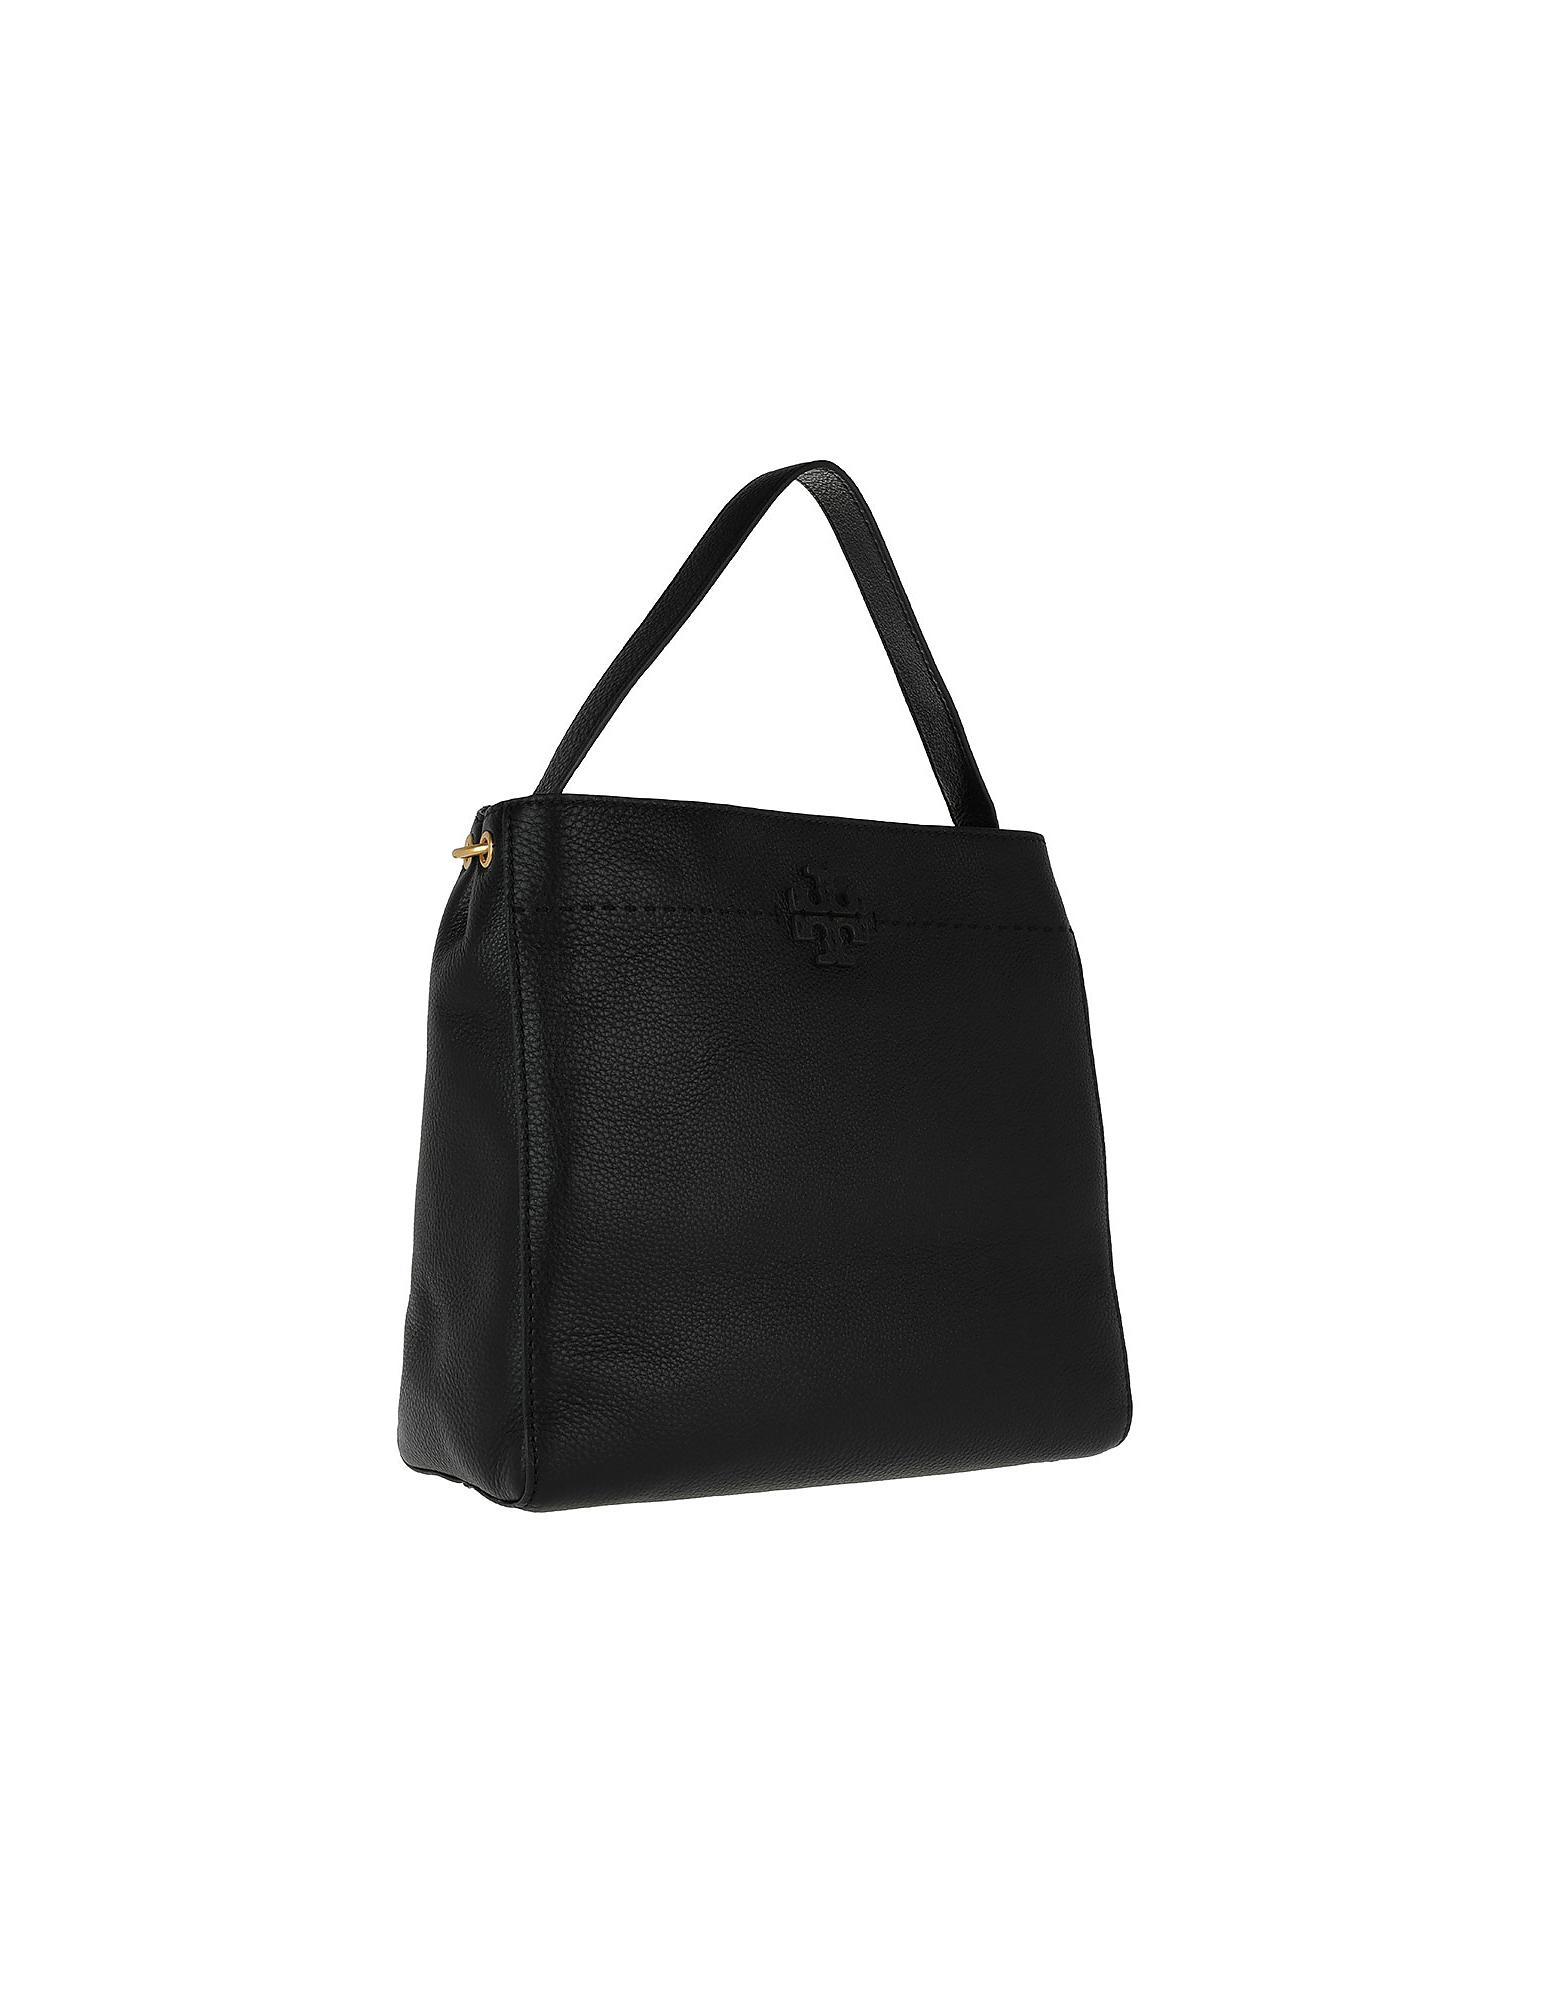 3fee899ad26 Lyst - Tory Burch Mcgraw Hobo Bag Black in Black